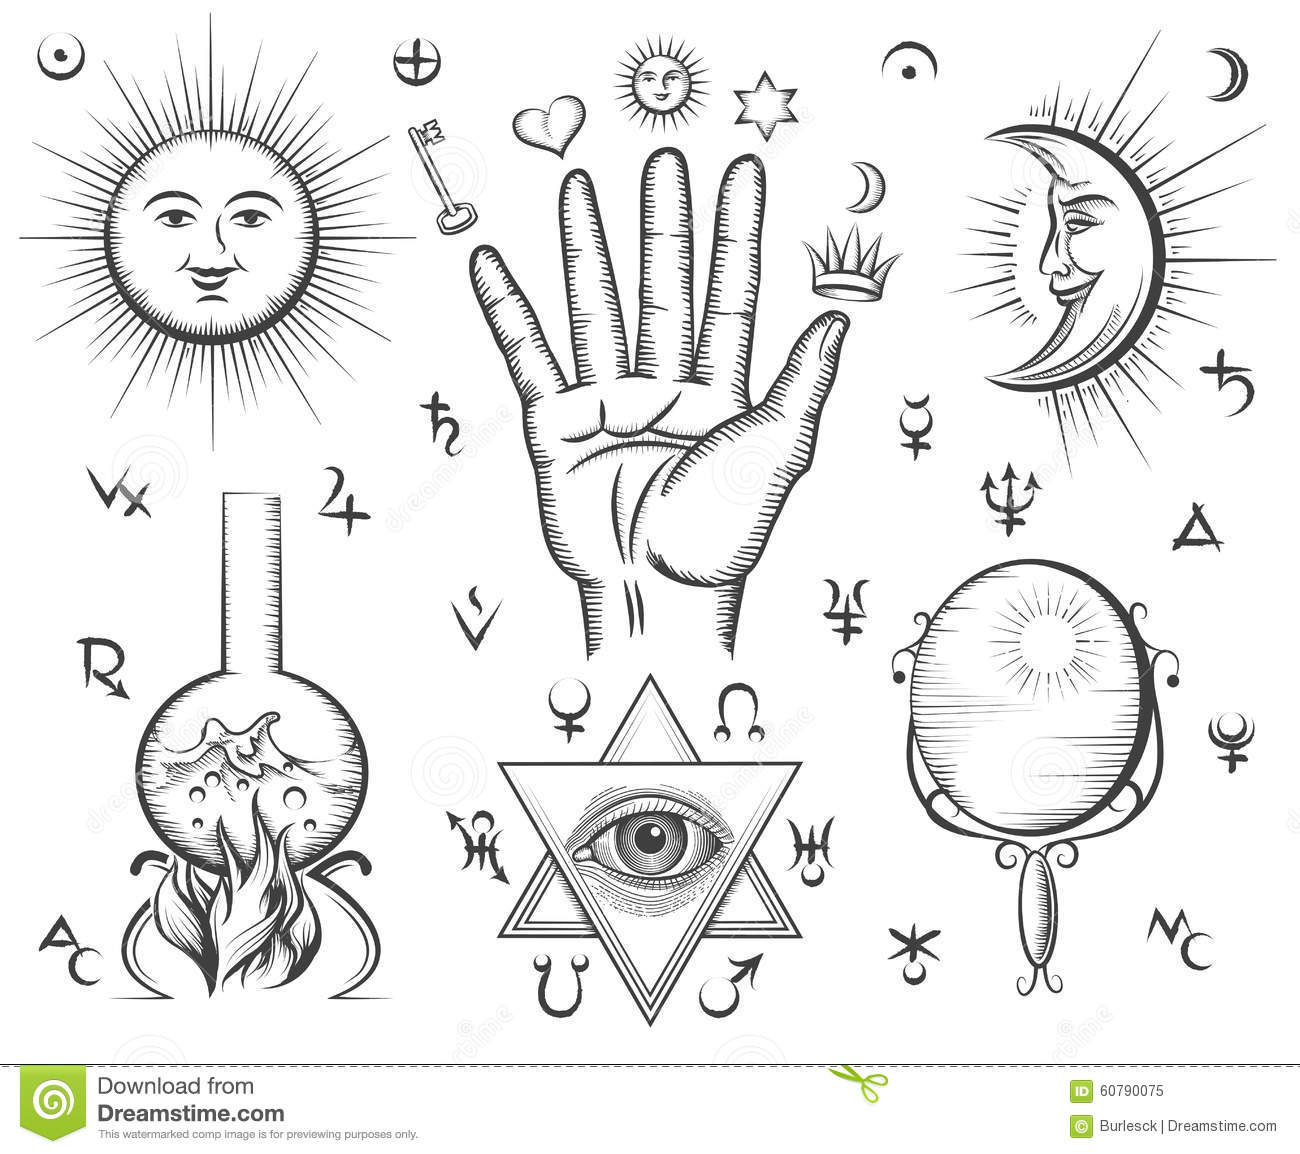 Alchemy spirituality occultism chemistry magic stock vector royalty free vector biocorpaavc